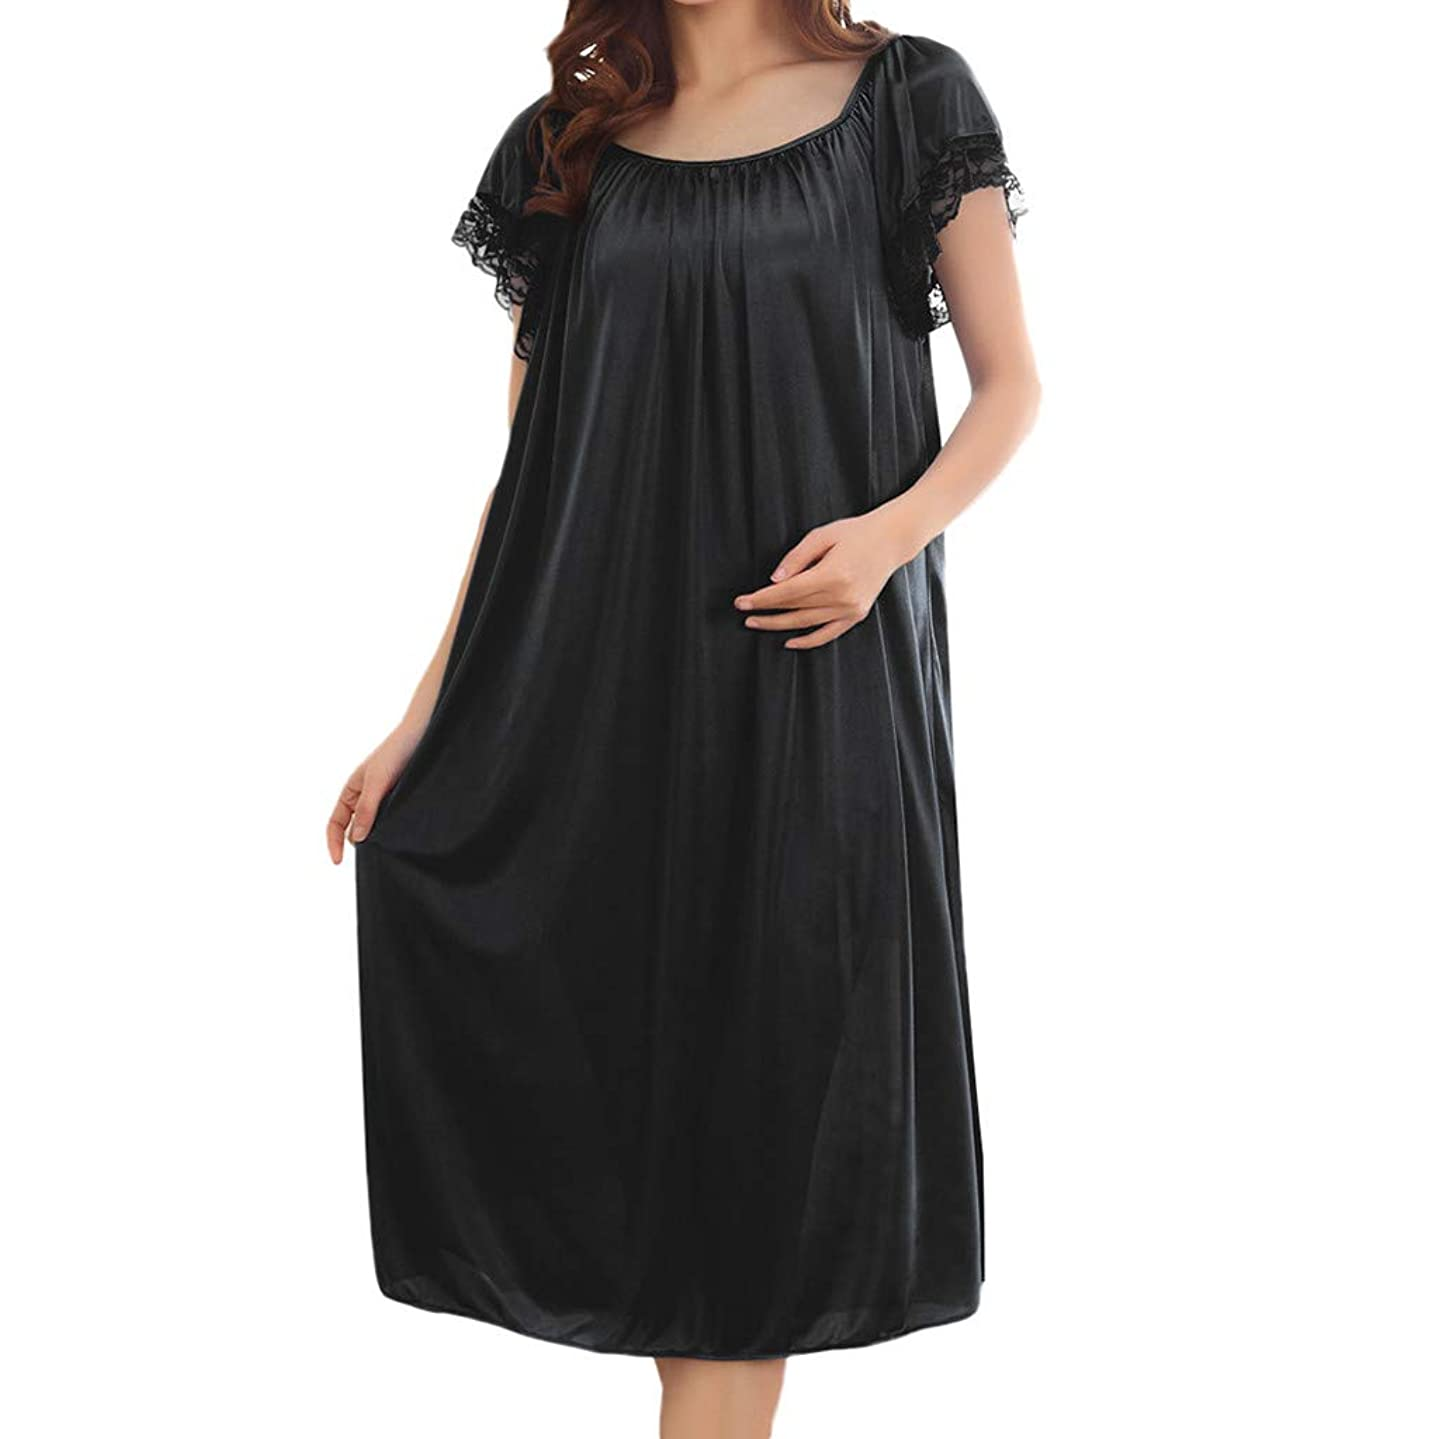 2019 Summer Women Home Lace Ice Silk Short Sleeve Loose Plus Oversize Nightgown Dress